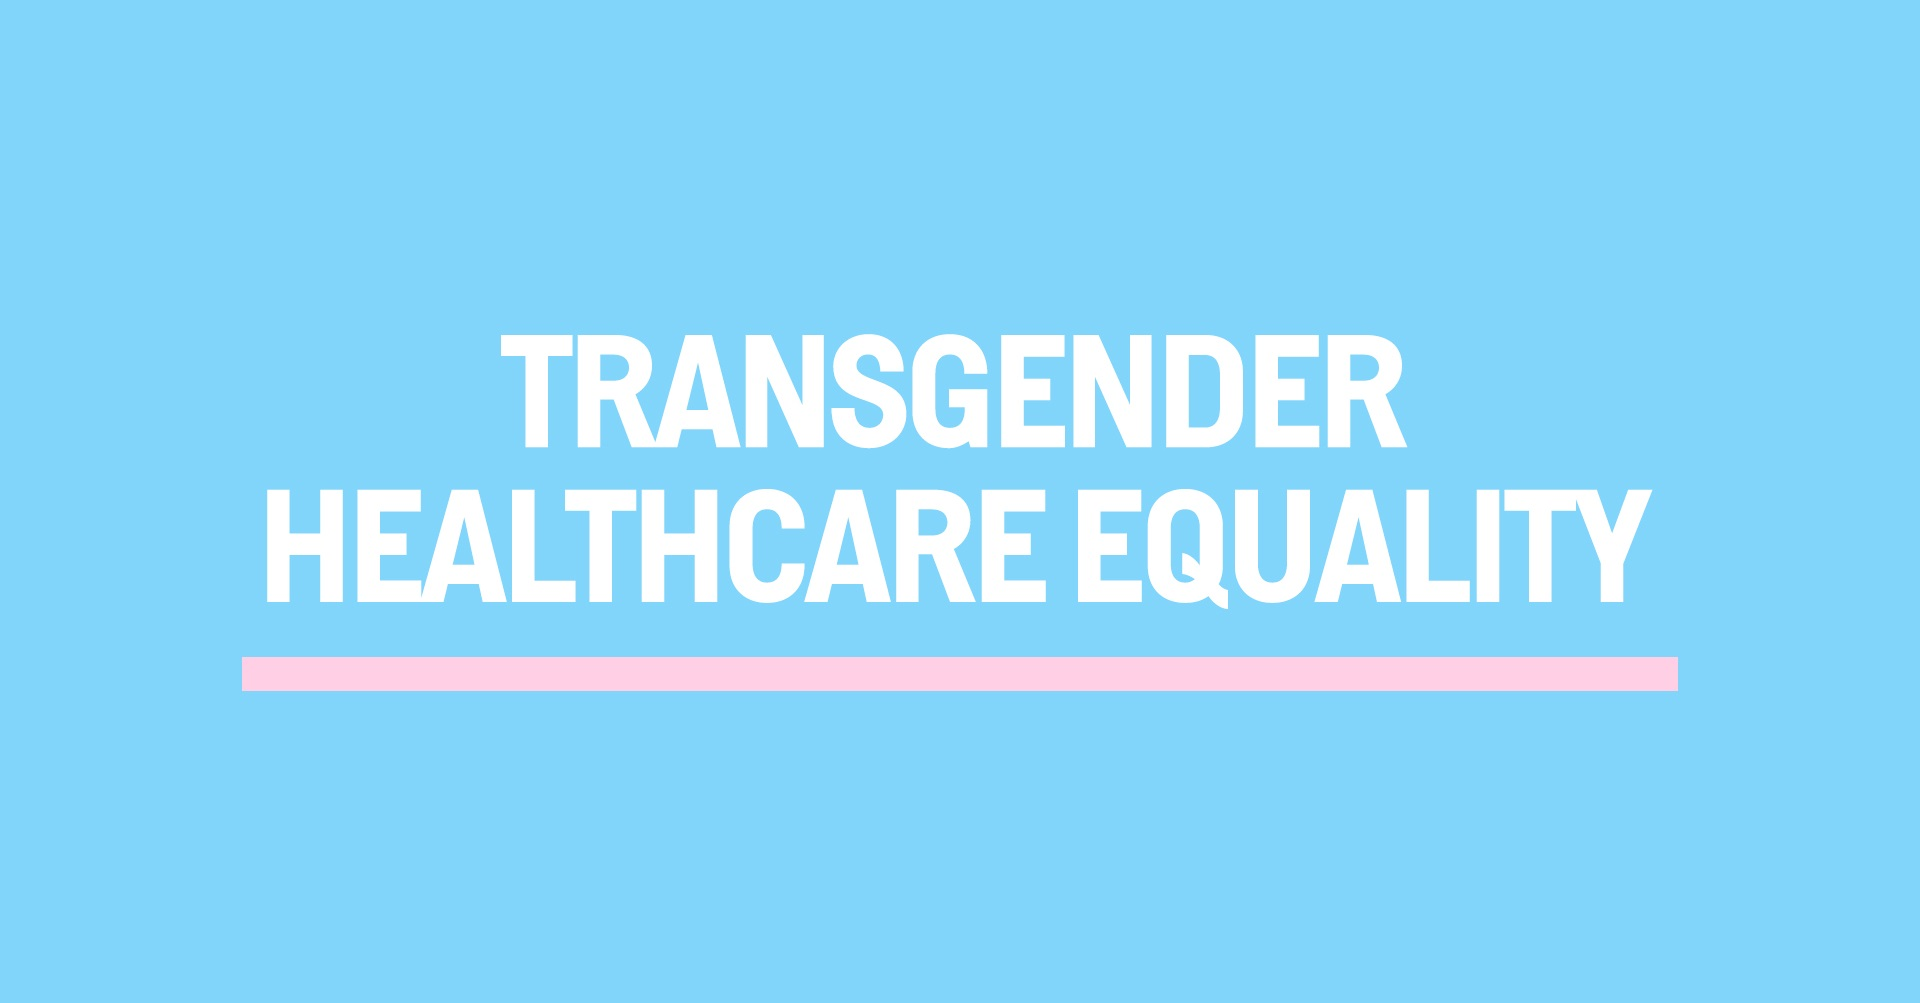 quality healthcare for transgender people Transgender people have a critical need for access to quality, gender-af- firming health care, as well as access to legal services that support them in addressing discrimination 1,2,3,4,5 to truly meet the complex needs of.